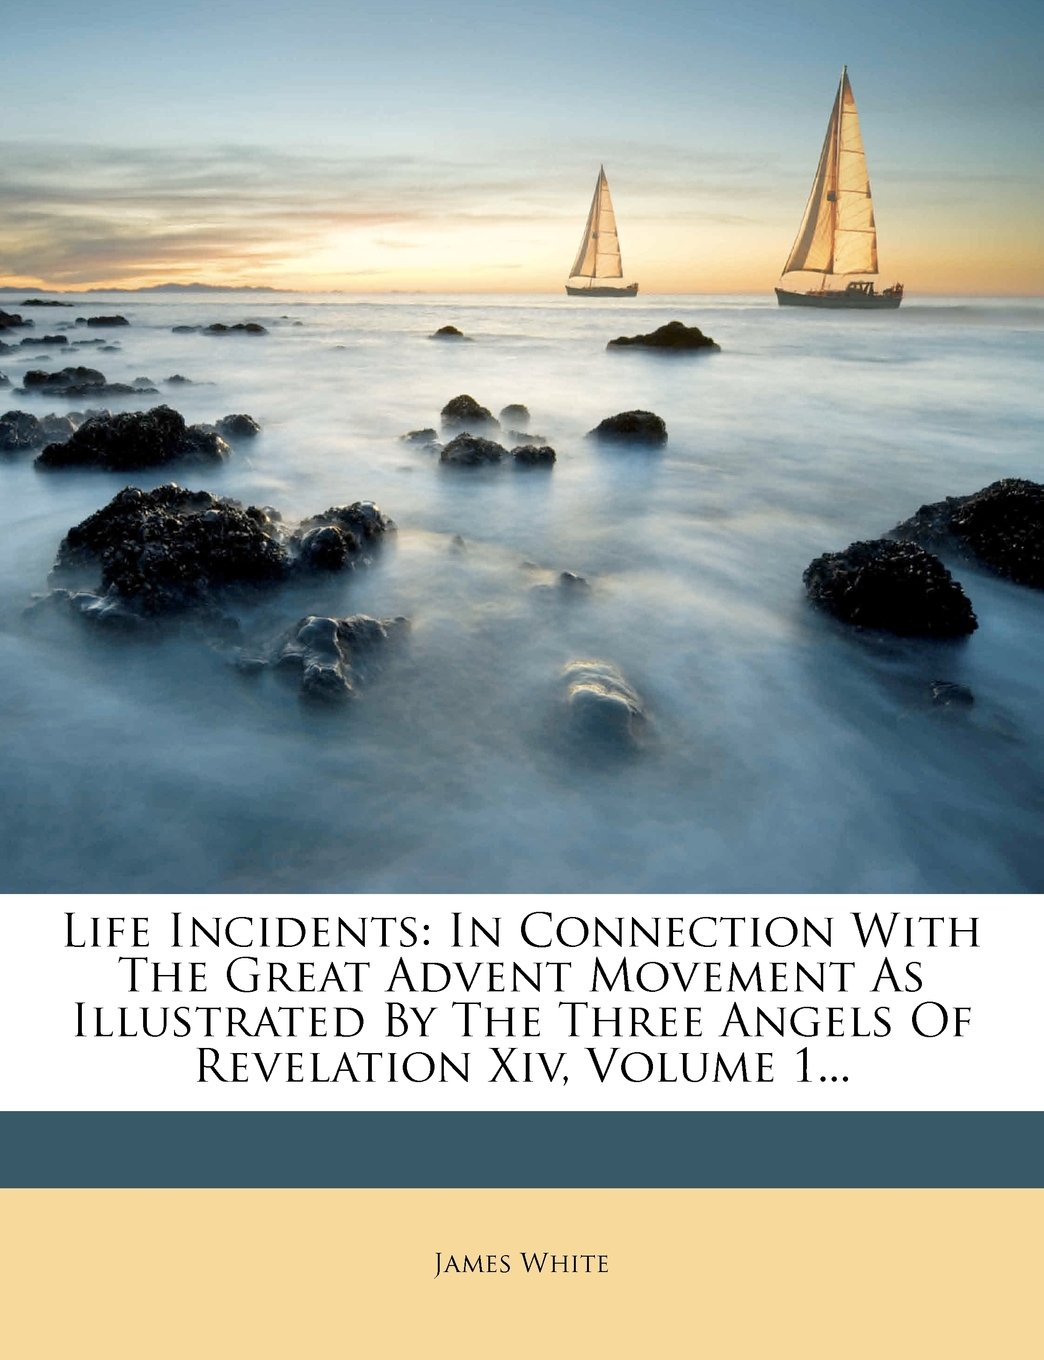 Read Online Life Incidents: In Connection With The Great Advent Movement As Illustrated By The Three Angels Of Revelation Xiv, Volume 1... pdf